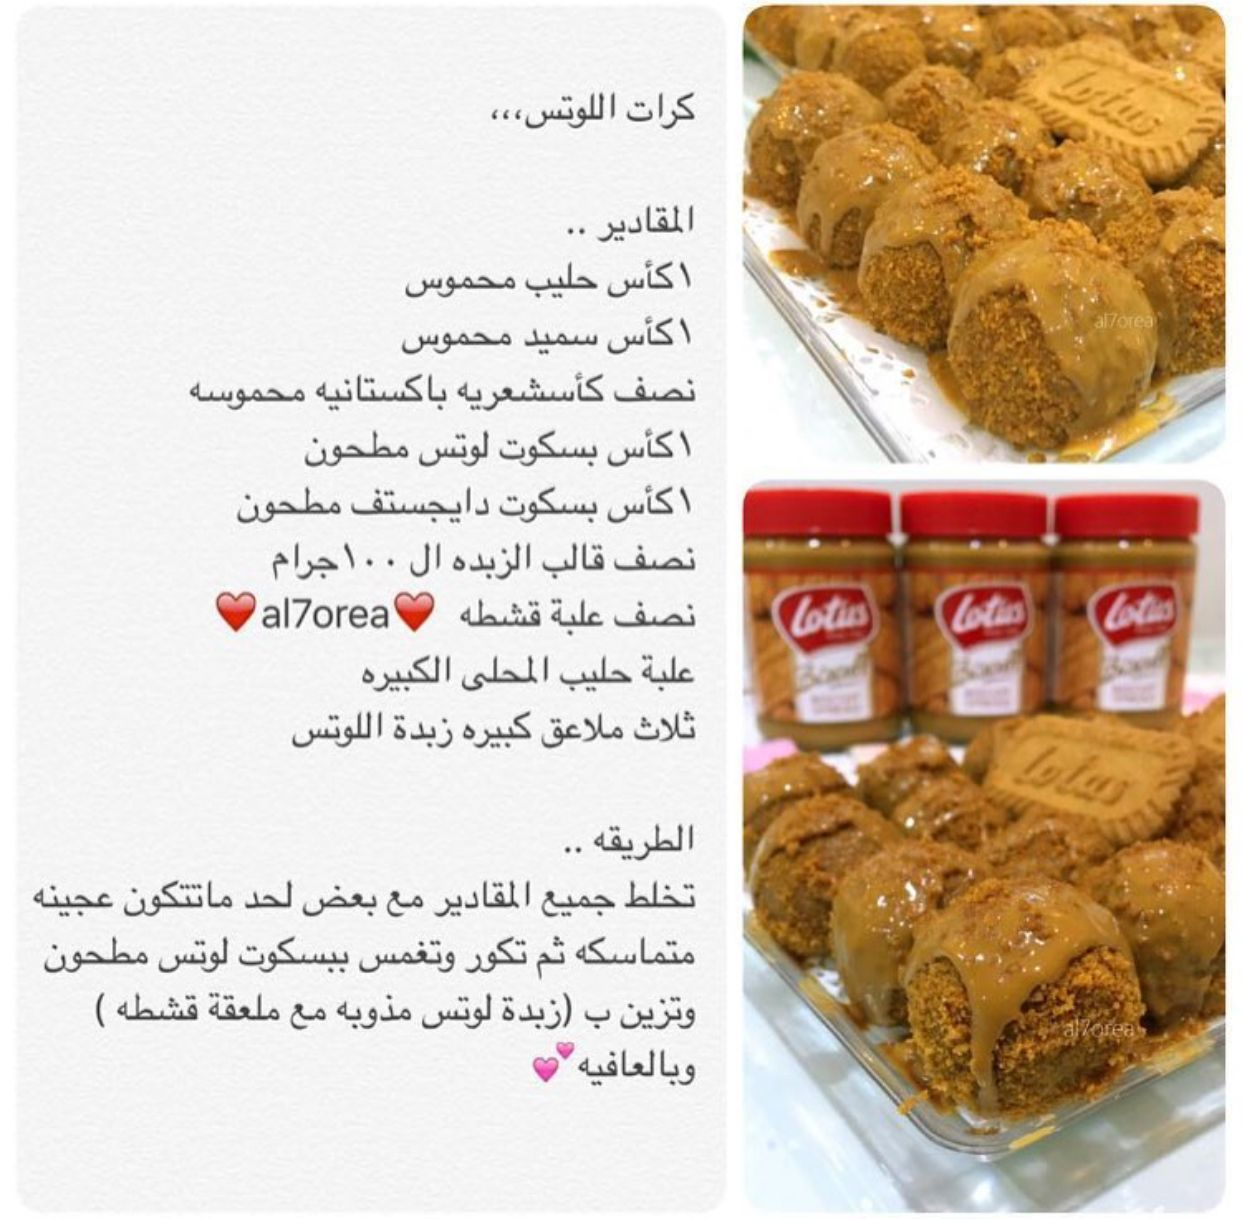 كرات اللوتس Yummy Food Dessert Ramadan Recipes Sweets Recipes